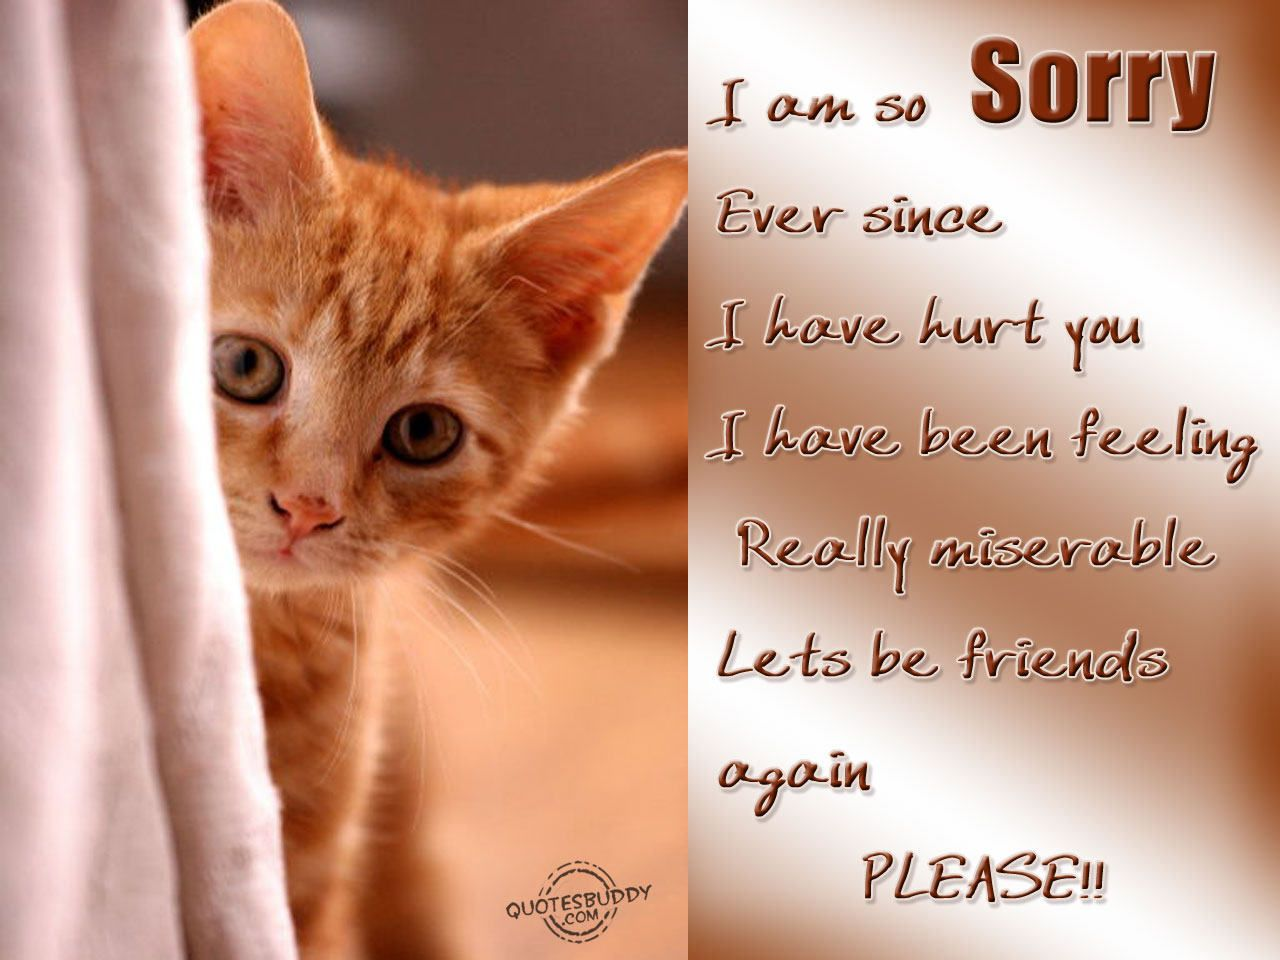 I Am Sorry Quotes For Hurting You Friend